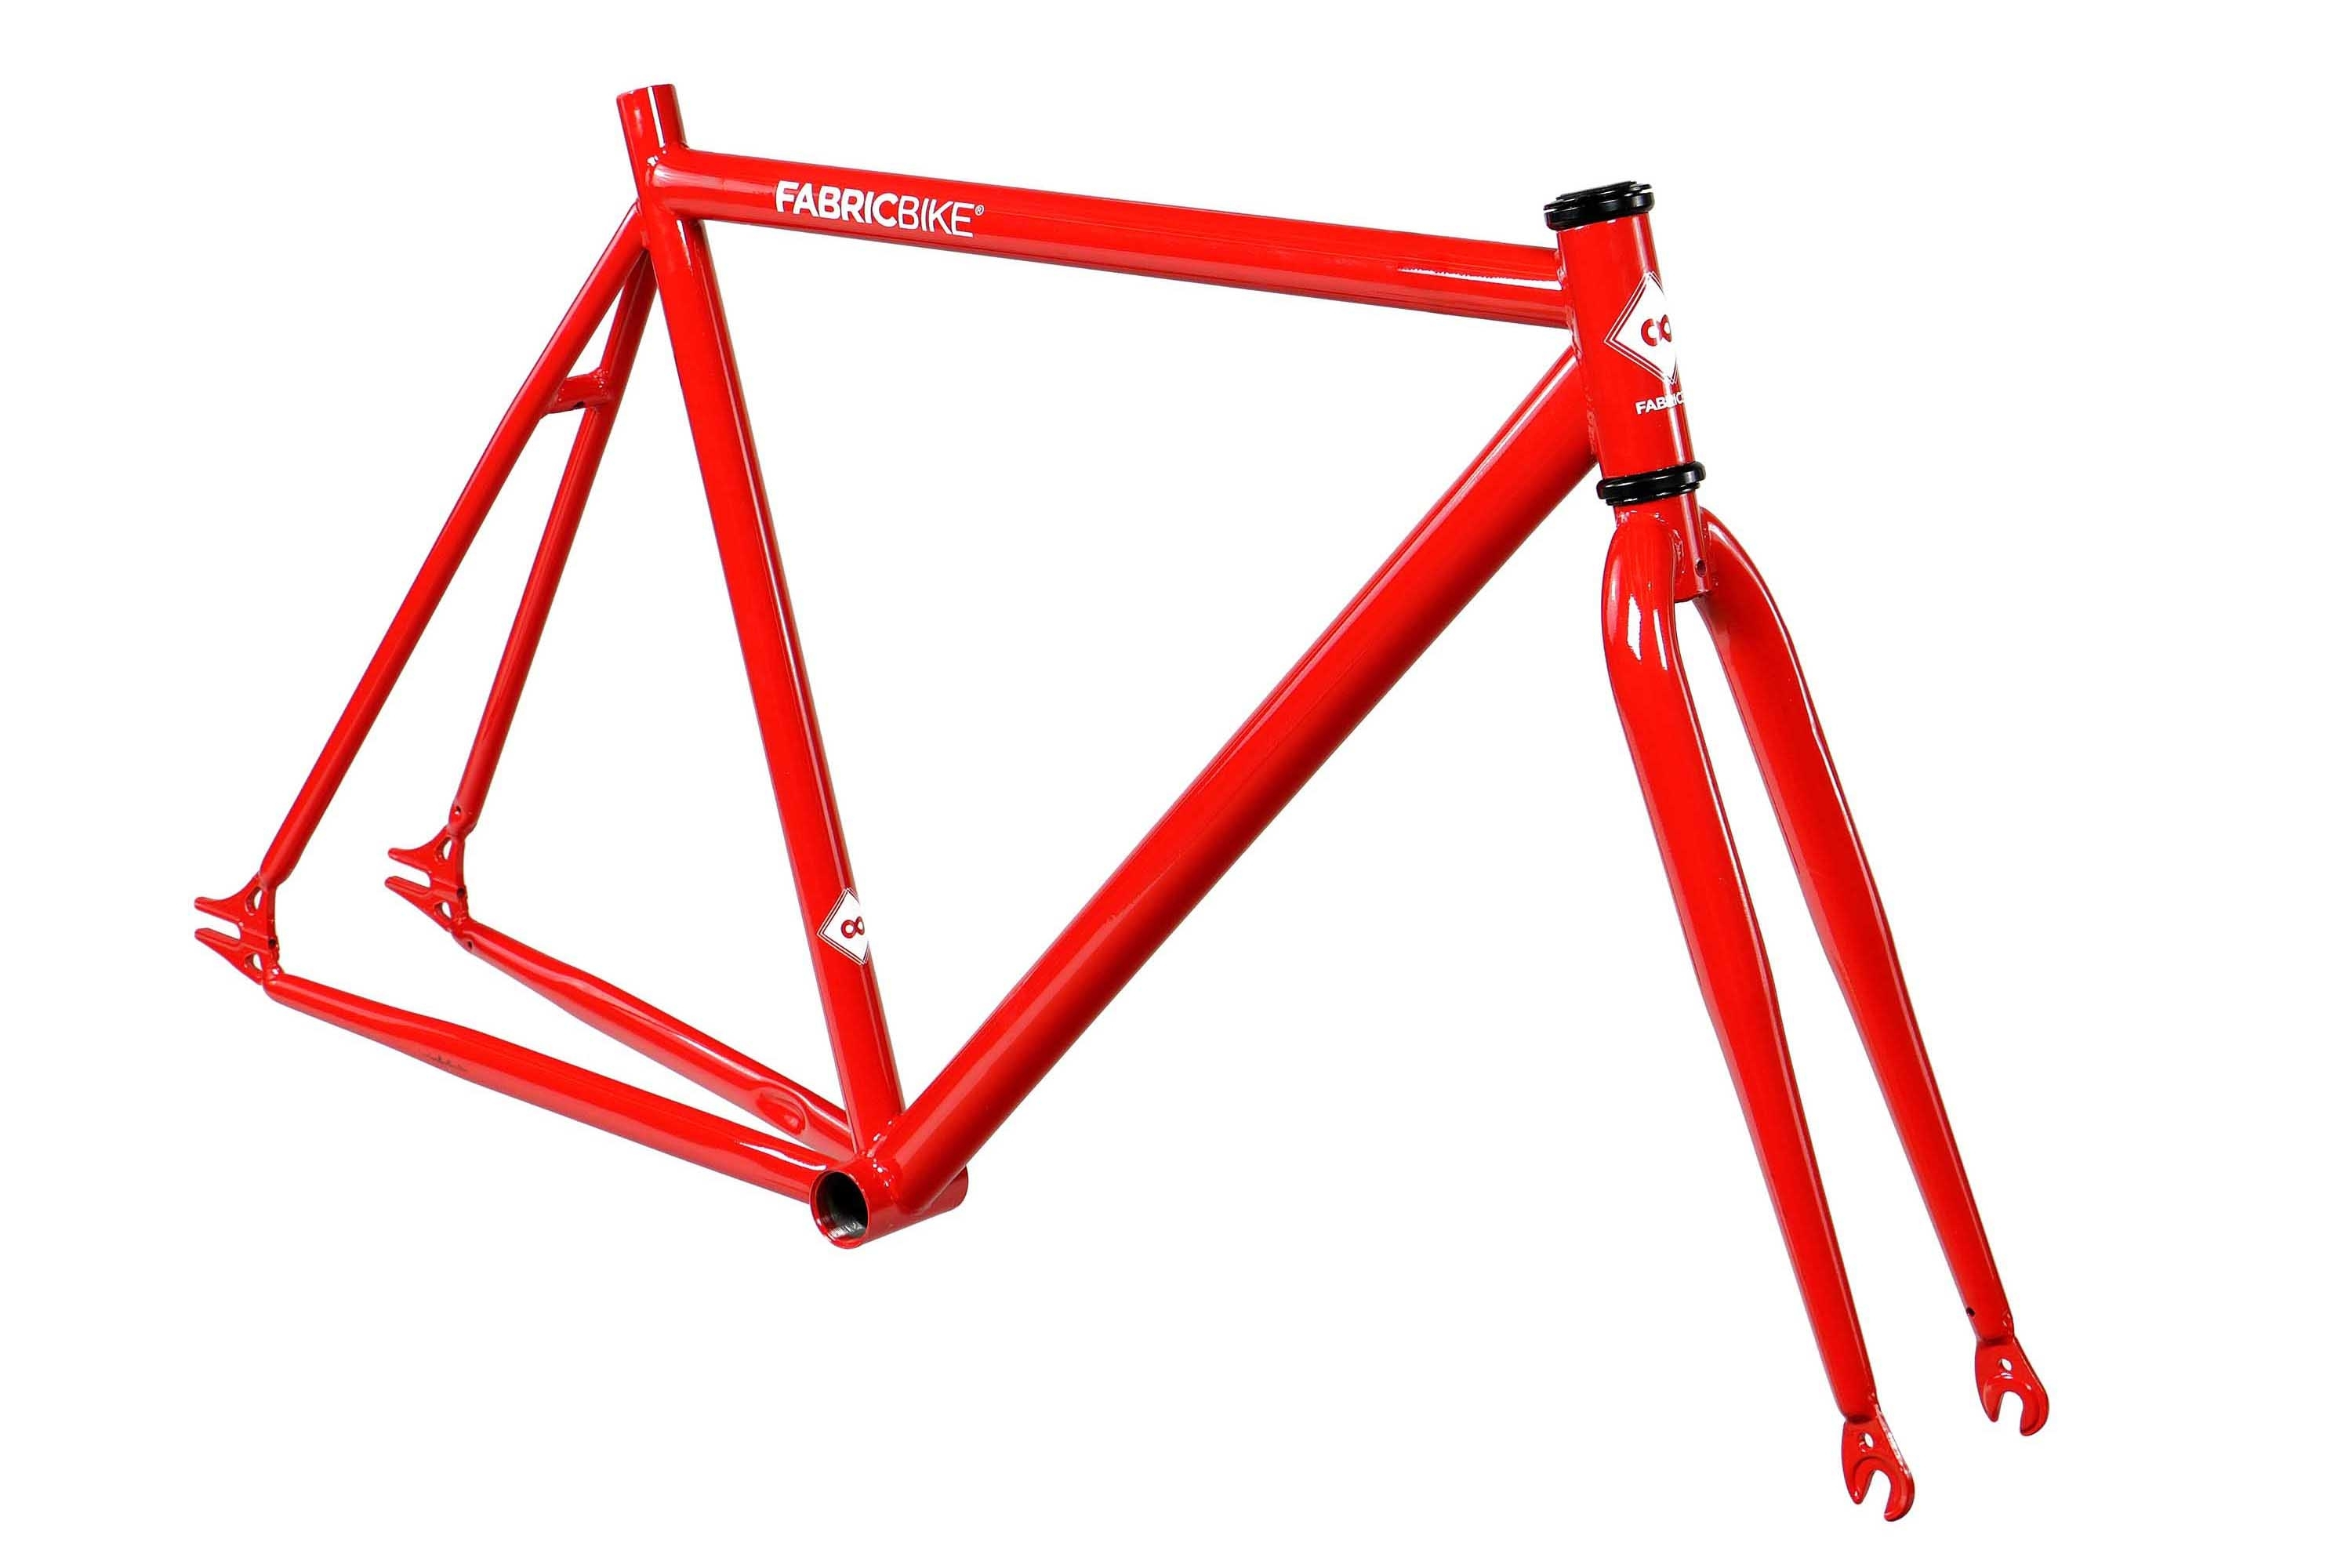 Fabricbike. Buy Fixie Frames. Track frames for fixed gear bikes